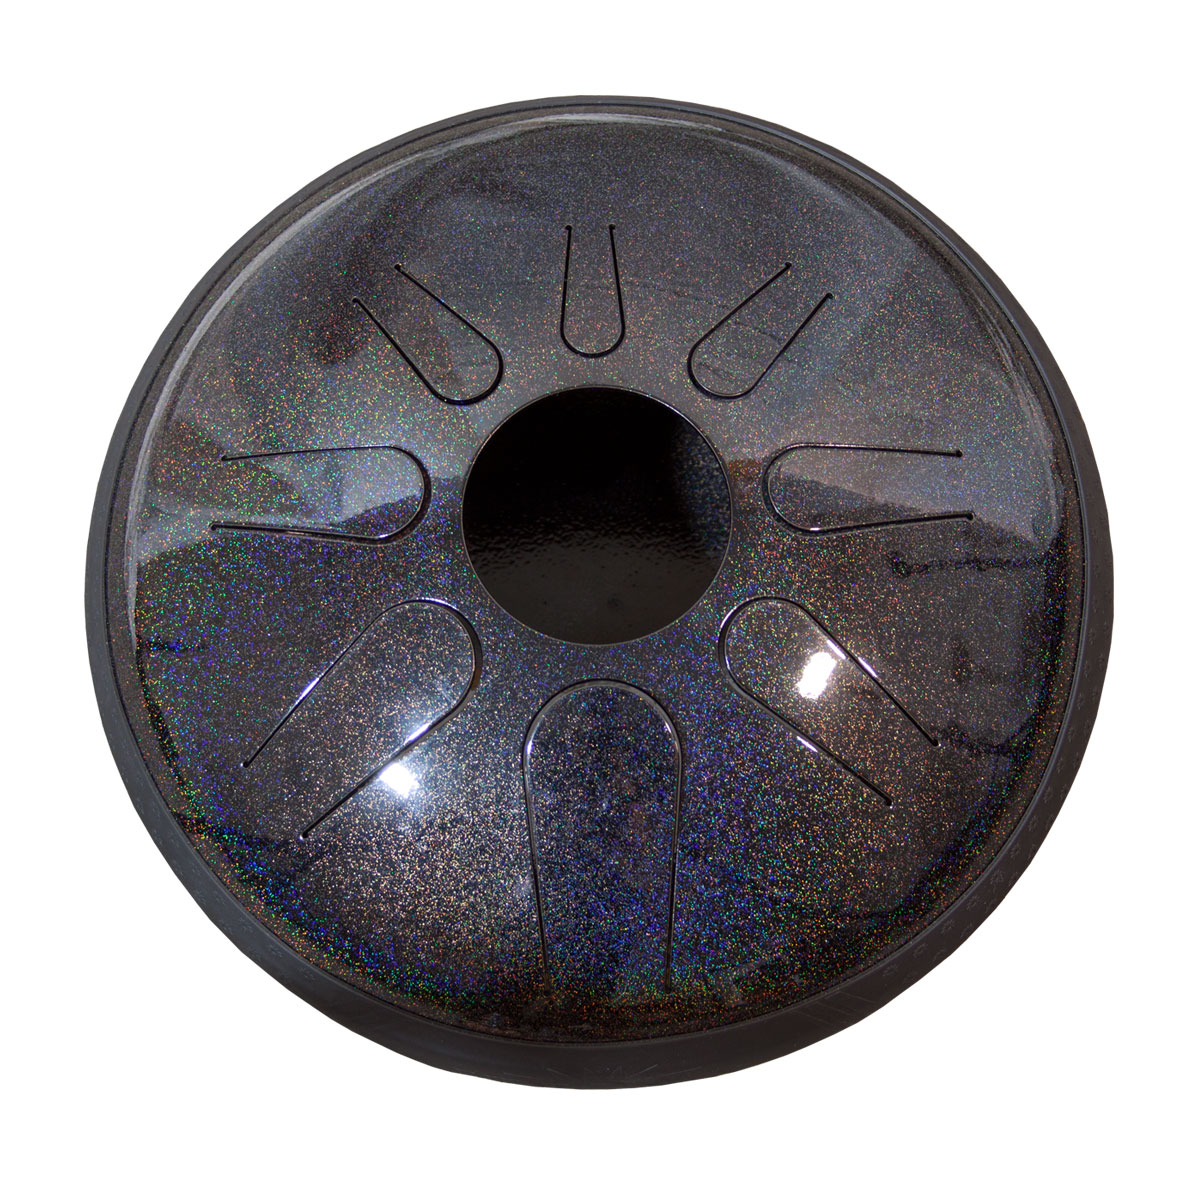 Billedresultat for steel tongue drum""